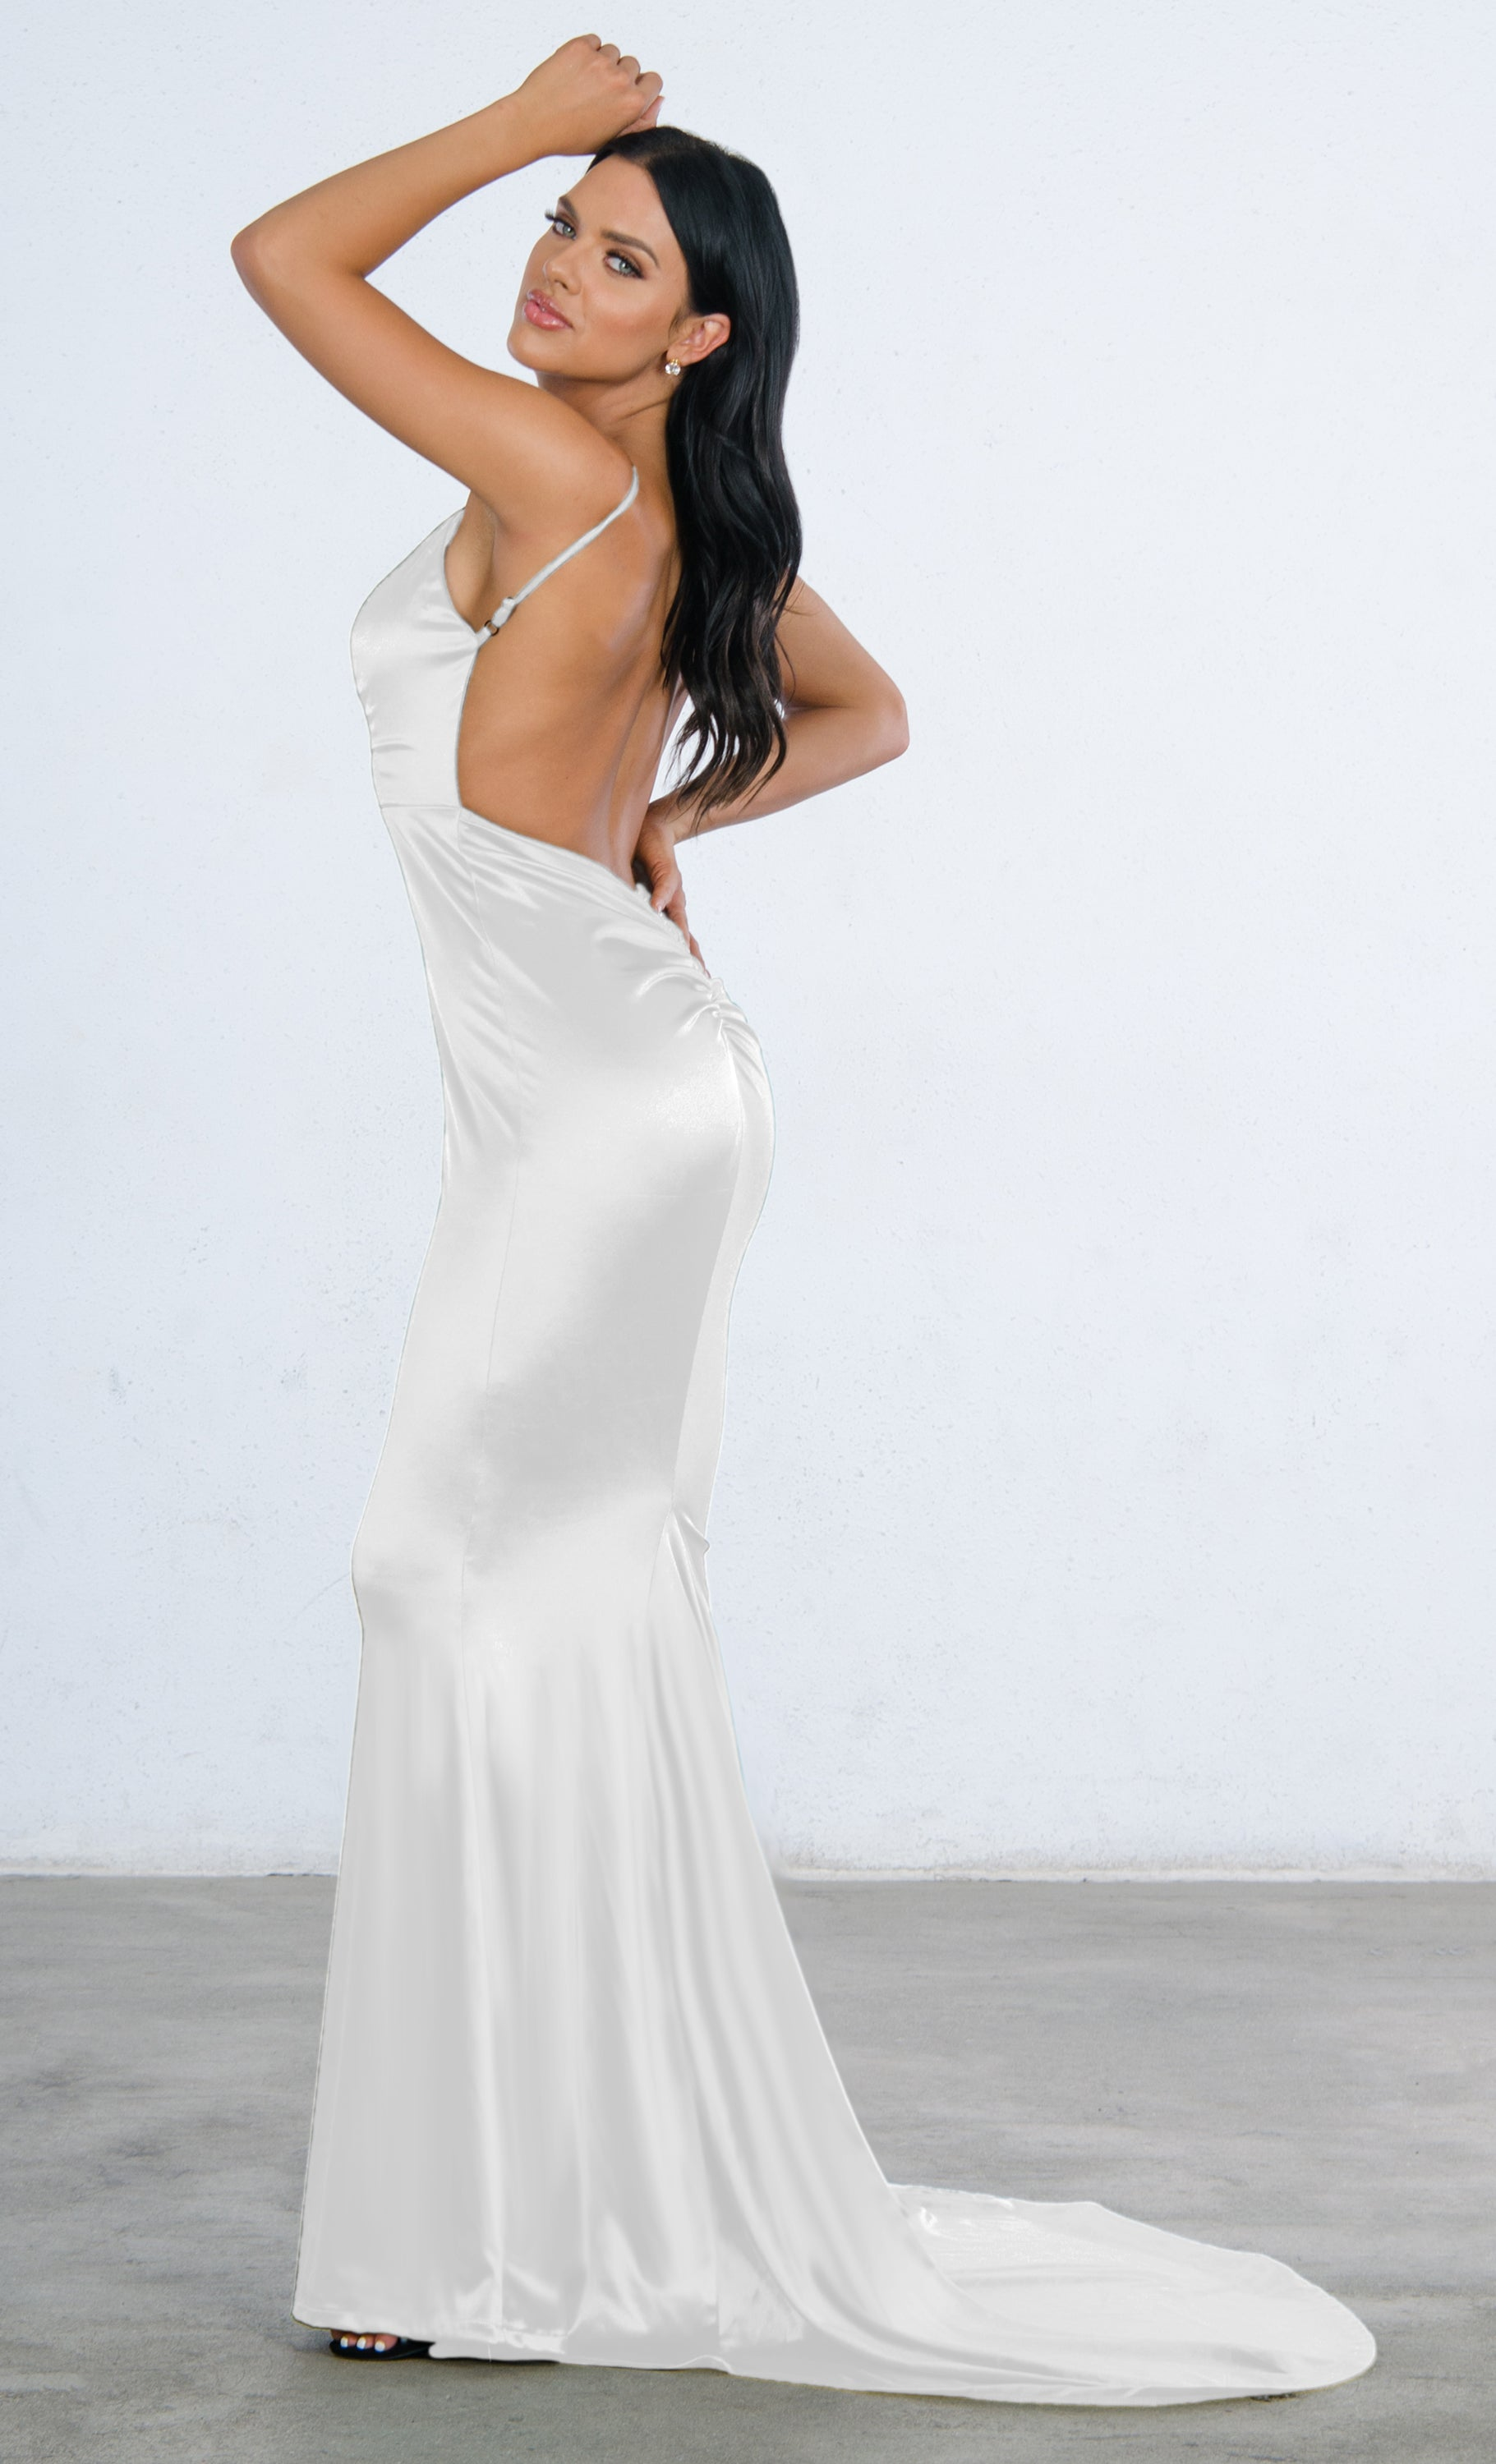 Indie XO Glowing Goddess Sleeveless Spaghetti Strap Plunge V Neck Ruched Back Mermaid Maxi Dress - 3 Colors Available